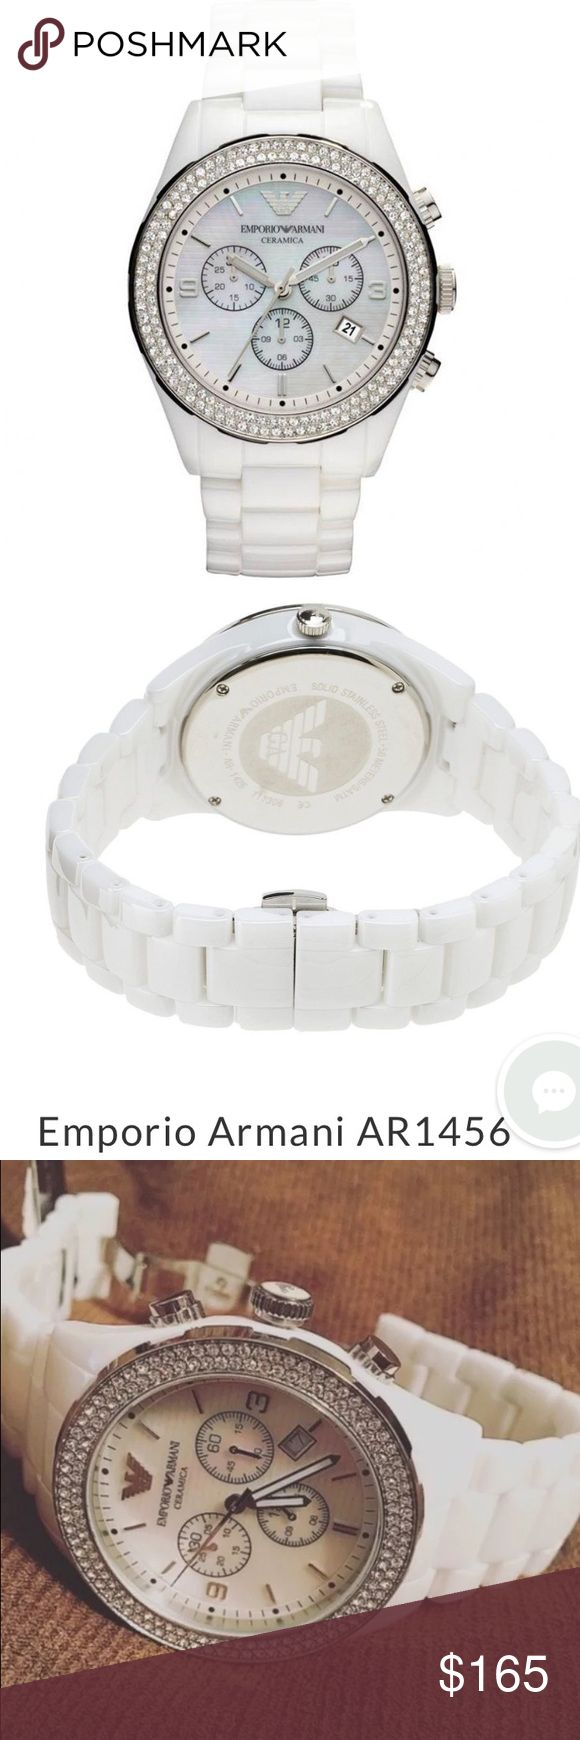 "NWT Emporio Armani Ceramic Watch AR1456 Women's white ceramic Emporio Armani watch. Has two rows of Swarovski crystals around the bezel, mother of pearl face, and chronograph feature. Watch is NEW with defects. Never warn, new with tags! However, the chronograph (stopwatch function) resets to the ""10"" hand instead of ""12"" hand. Battery works, everything is in excellent condition! Original AR box not included. Authentic. No trades! Emporio Armani Accessories Watches"